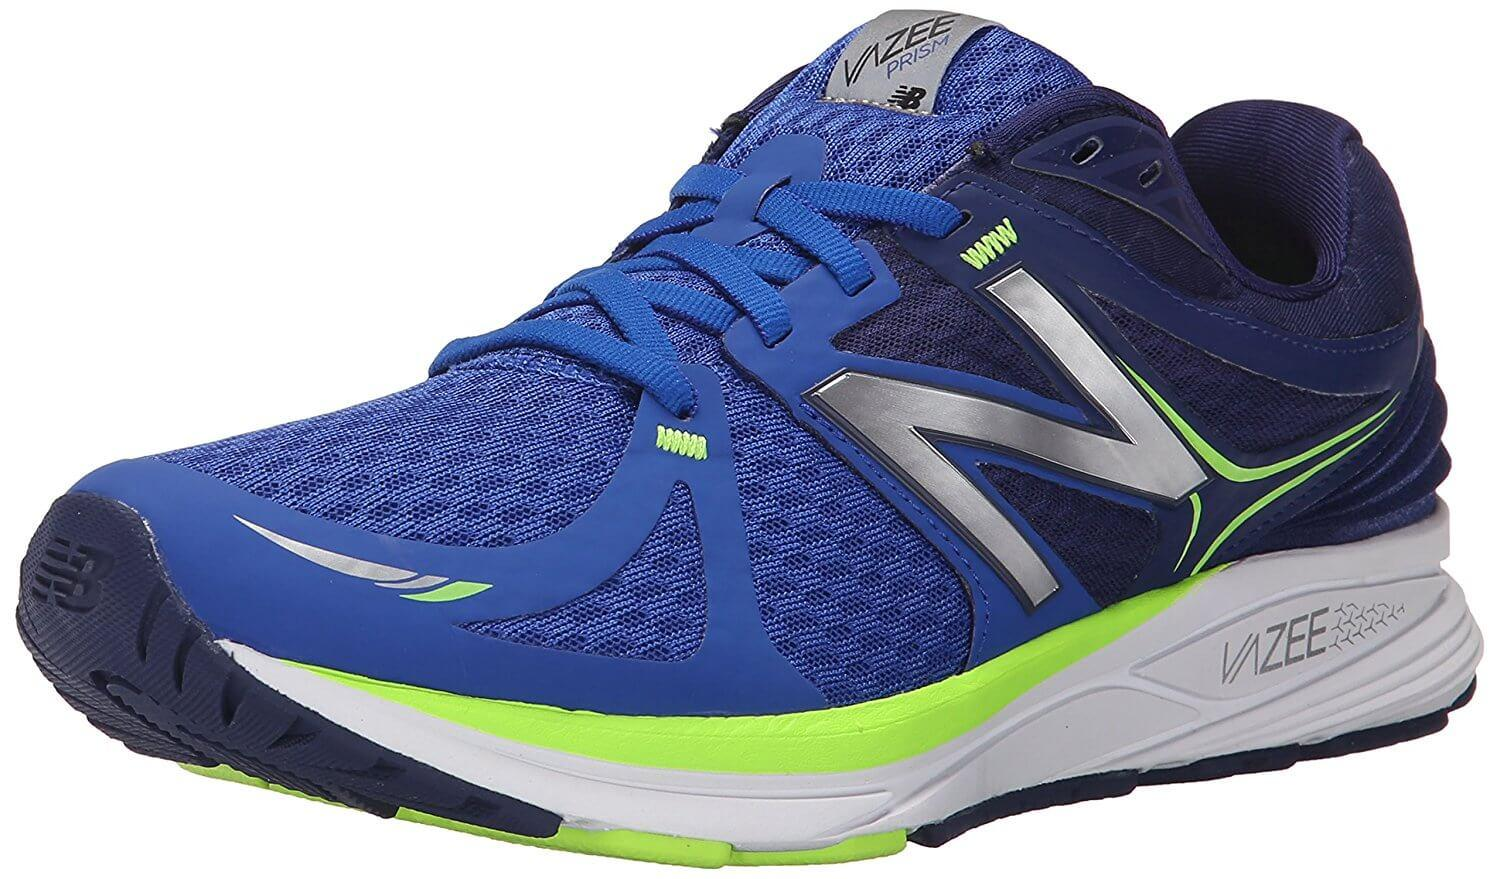 New Balance Vazee Prism reviewed and compared